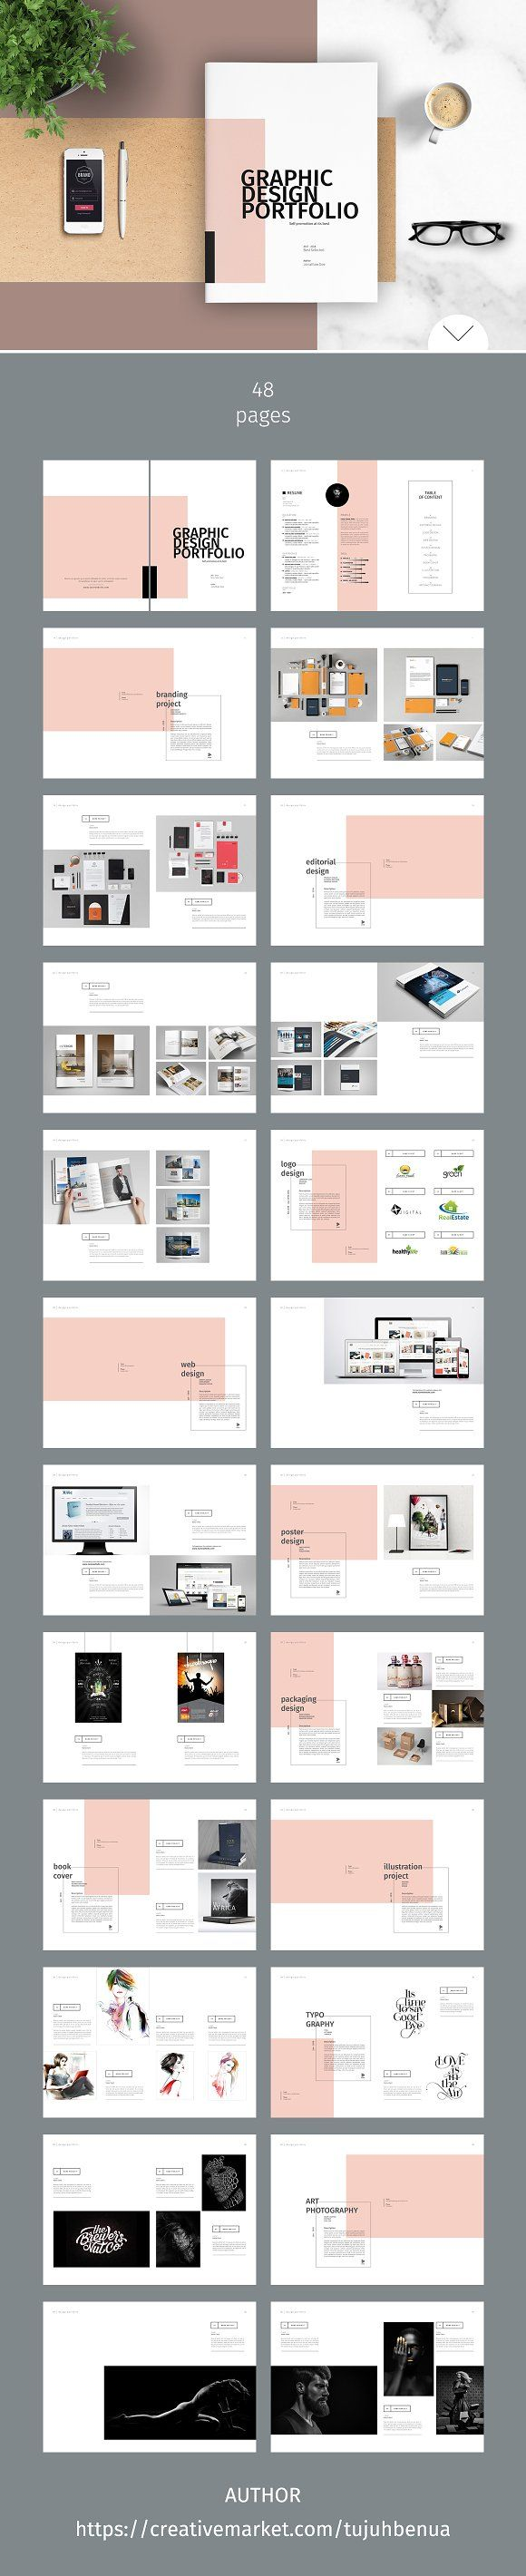 Best Portfolio Cover Design Images On   Page Layout